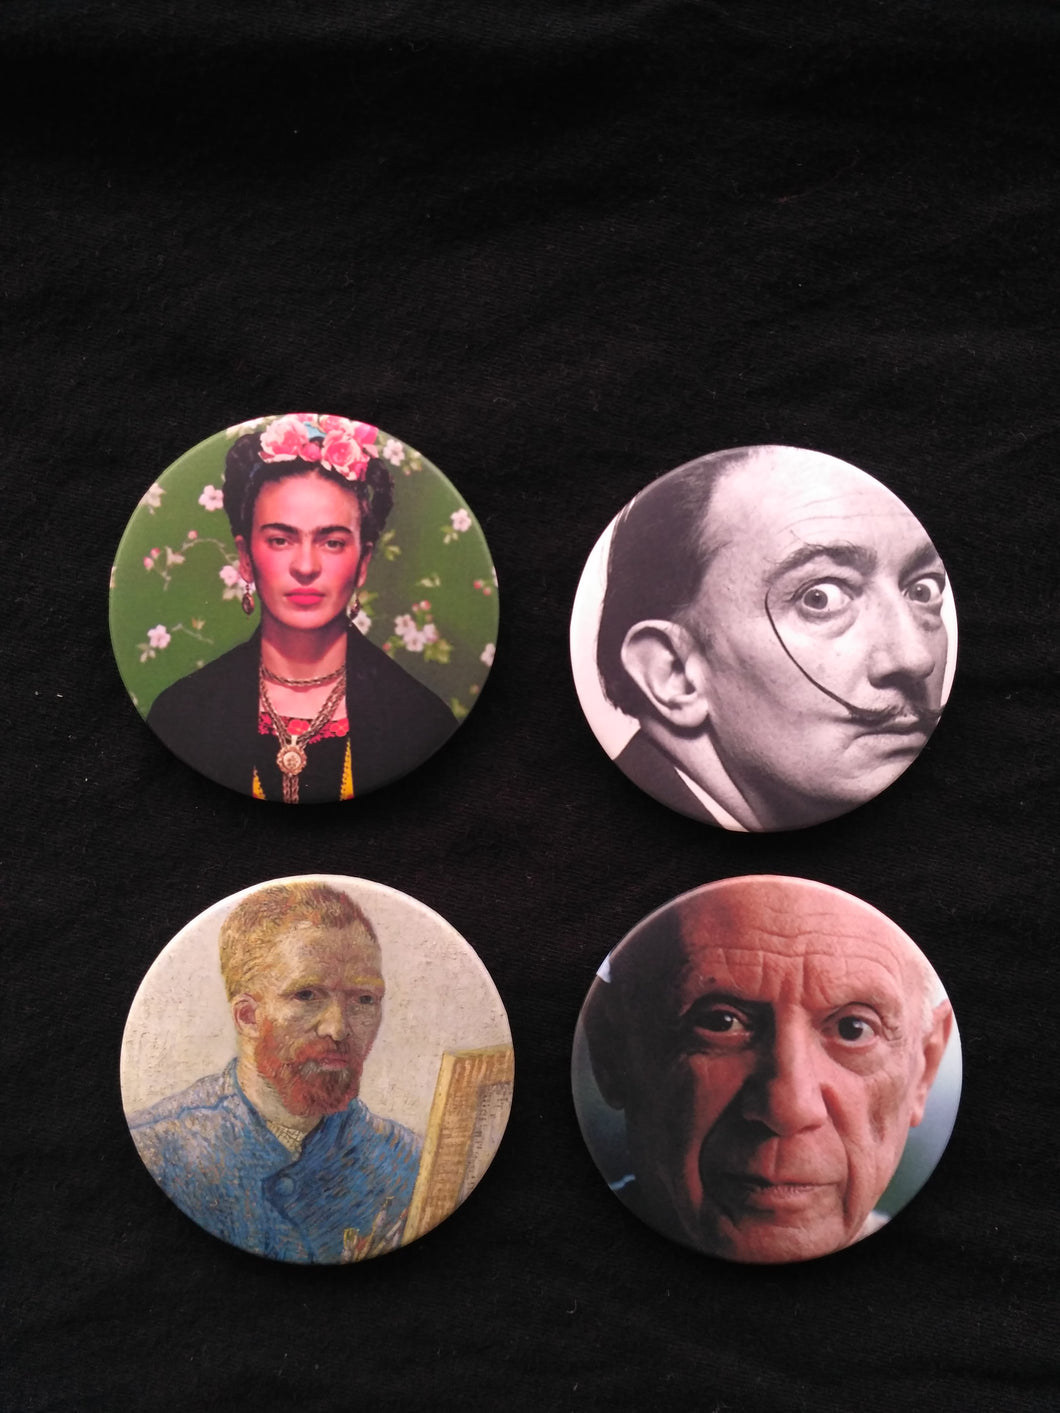 Limited Edition Artist Portrait Buttons